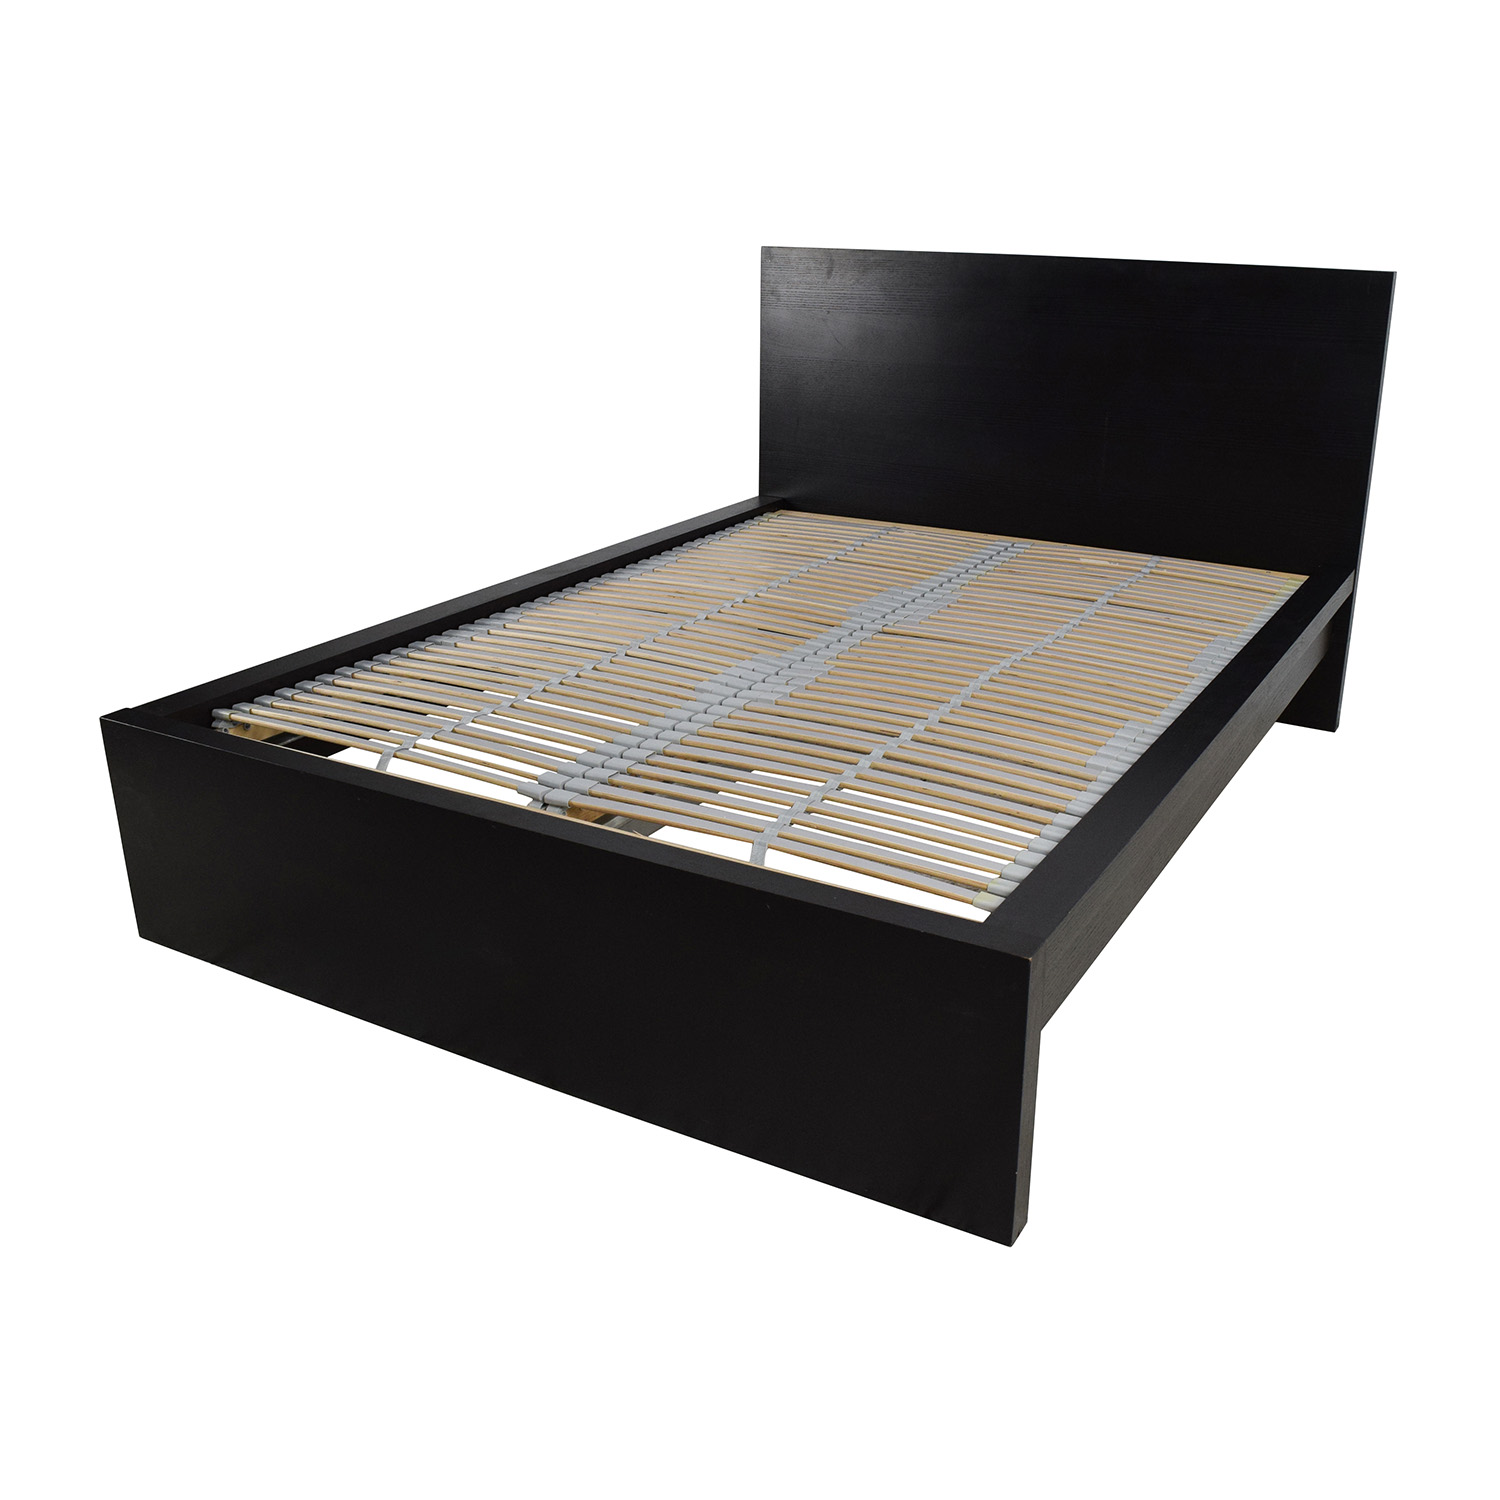 IKEA Full Bed Frame with Adjustable Slats / Bed Frames